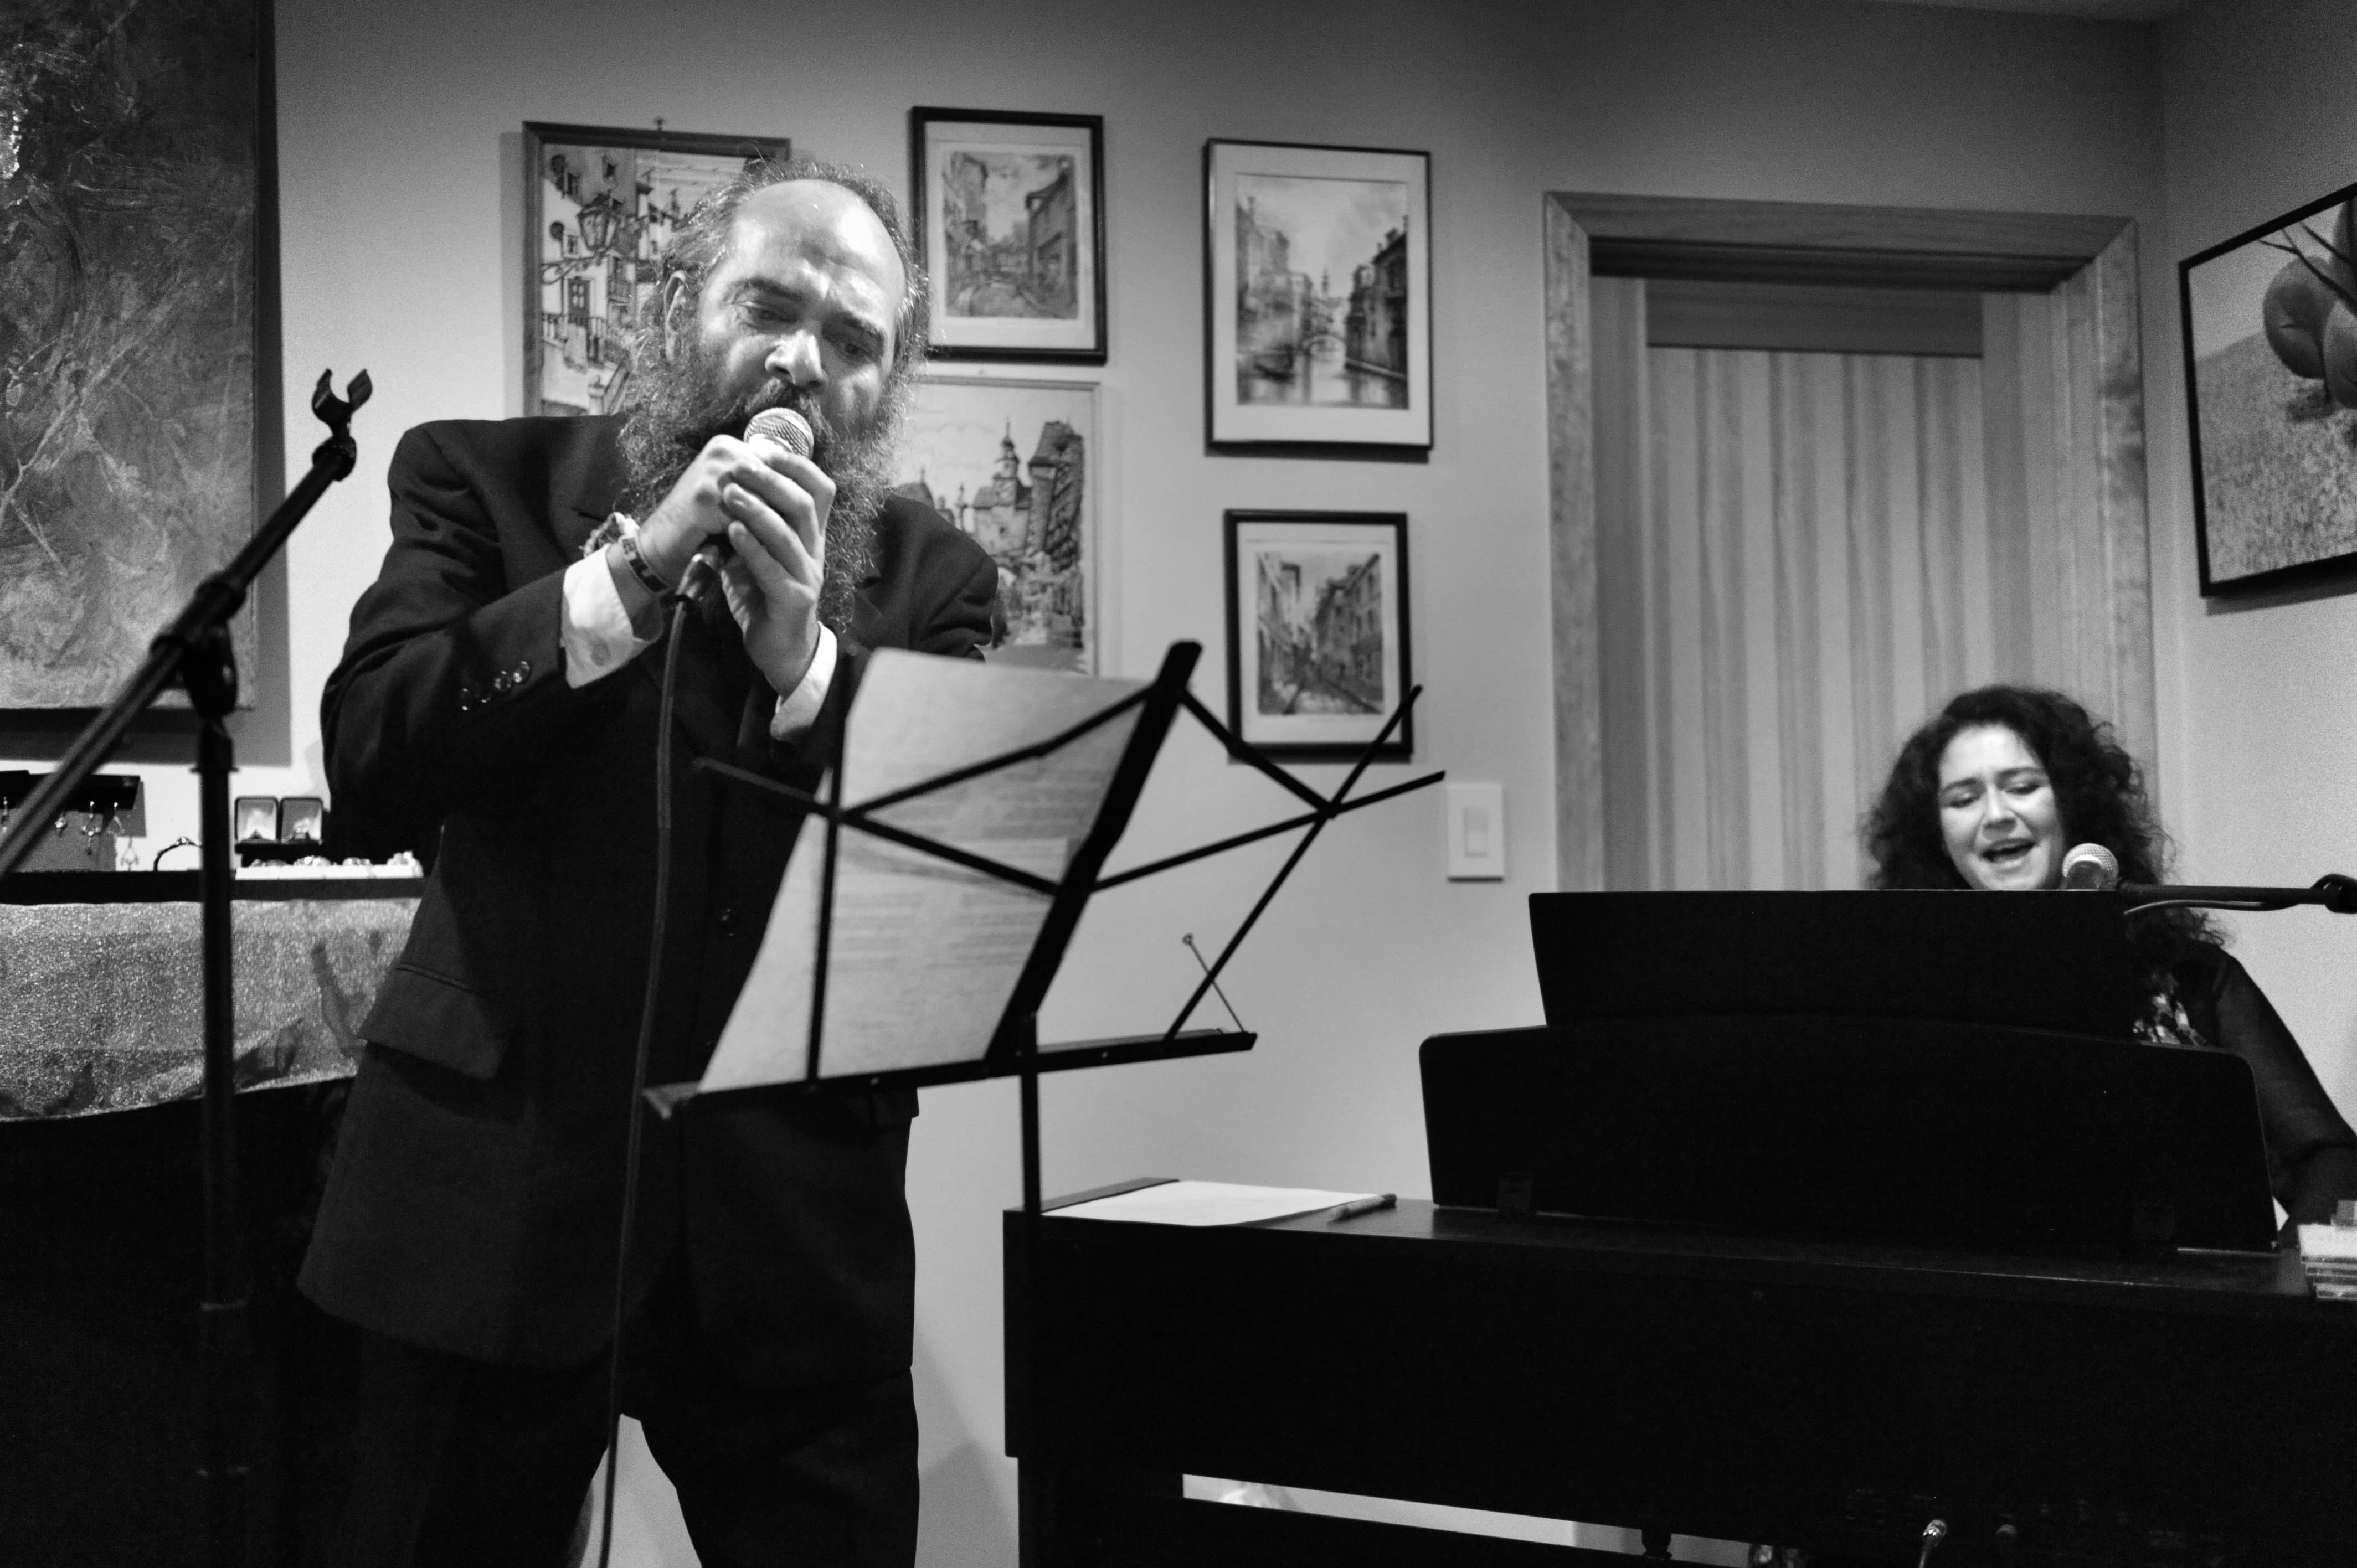 THE STRANNIKI (The Wanderers): Shlepping the Steppes and the Shtetl Psoy Korolenko (Russia / USA) and Polina Shepherd (Russia/UK)House concert10120 Parkwood Ter, Bethesda, MD 20814-4036https://www.polinashepherd.co.ukhttp://forward.com/culture/310193/inside-the-mad-yiddish-world-of-psoy-korolenjo/